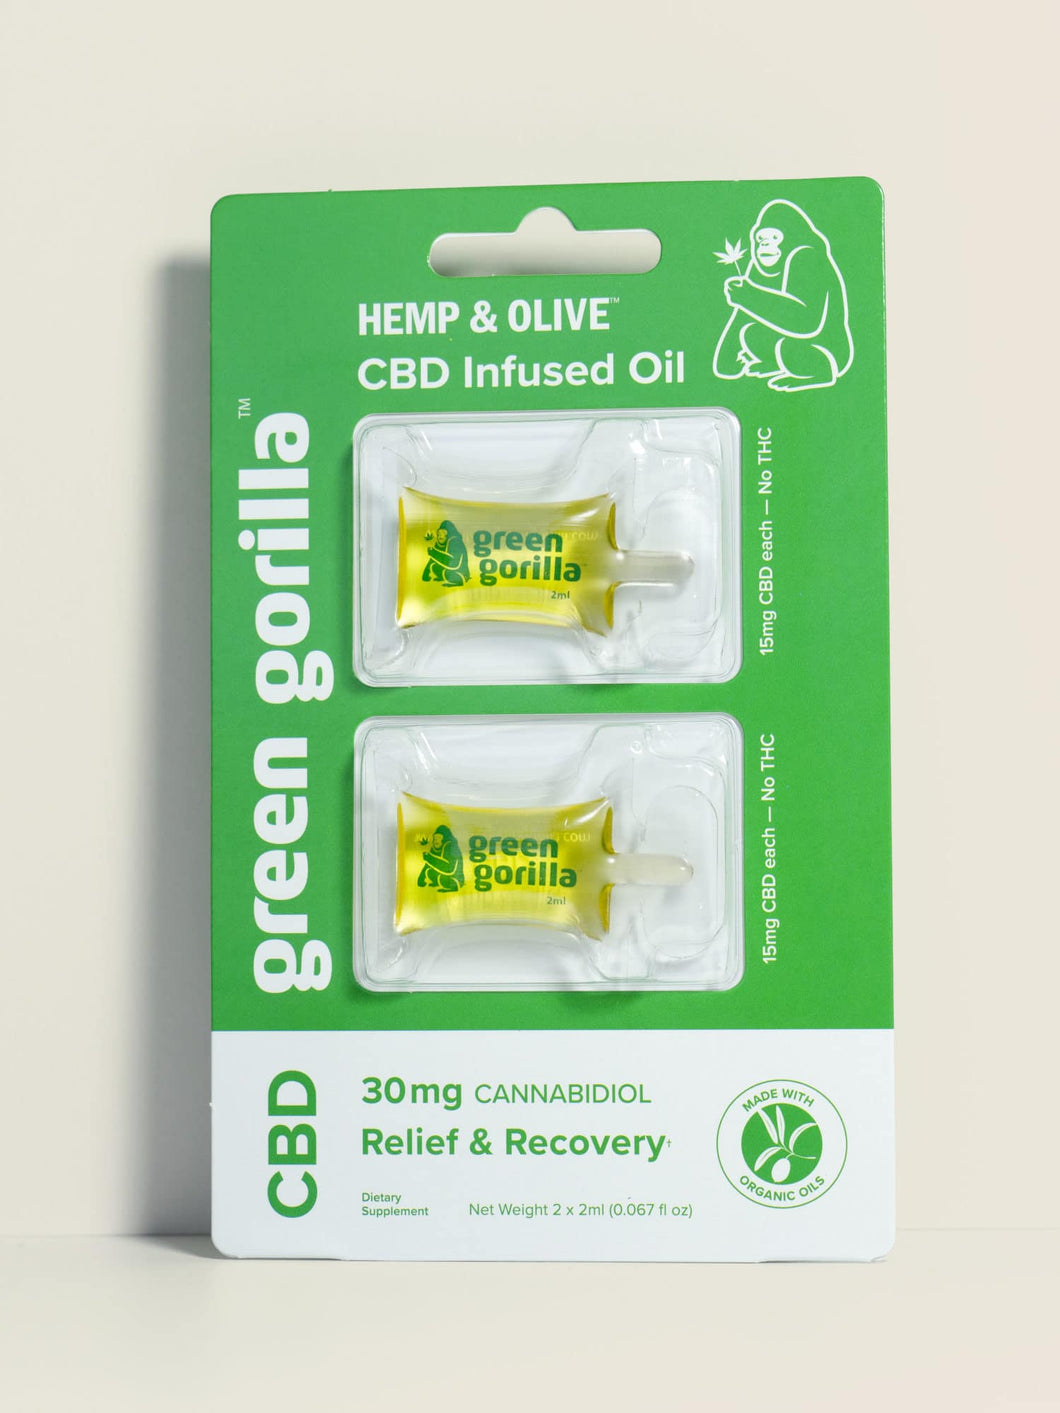 Hemp & Olive CBD infused Oil Single Serving Pack 30mg - 0.067 Oz by Green Gorilla